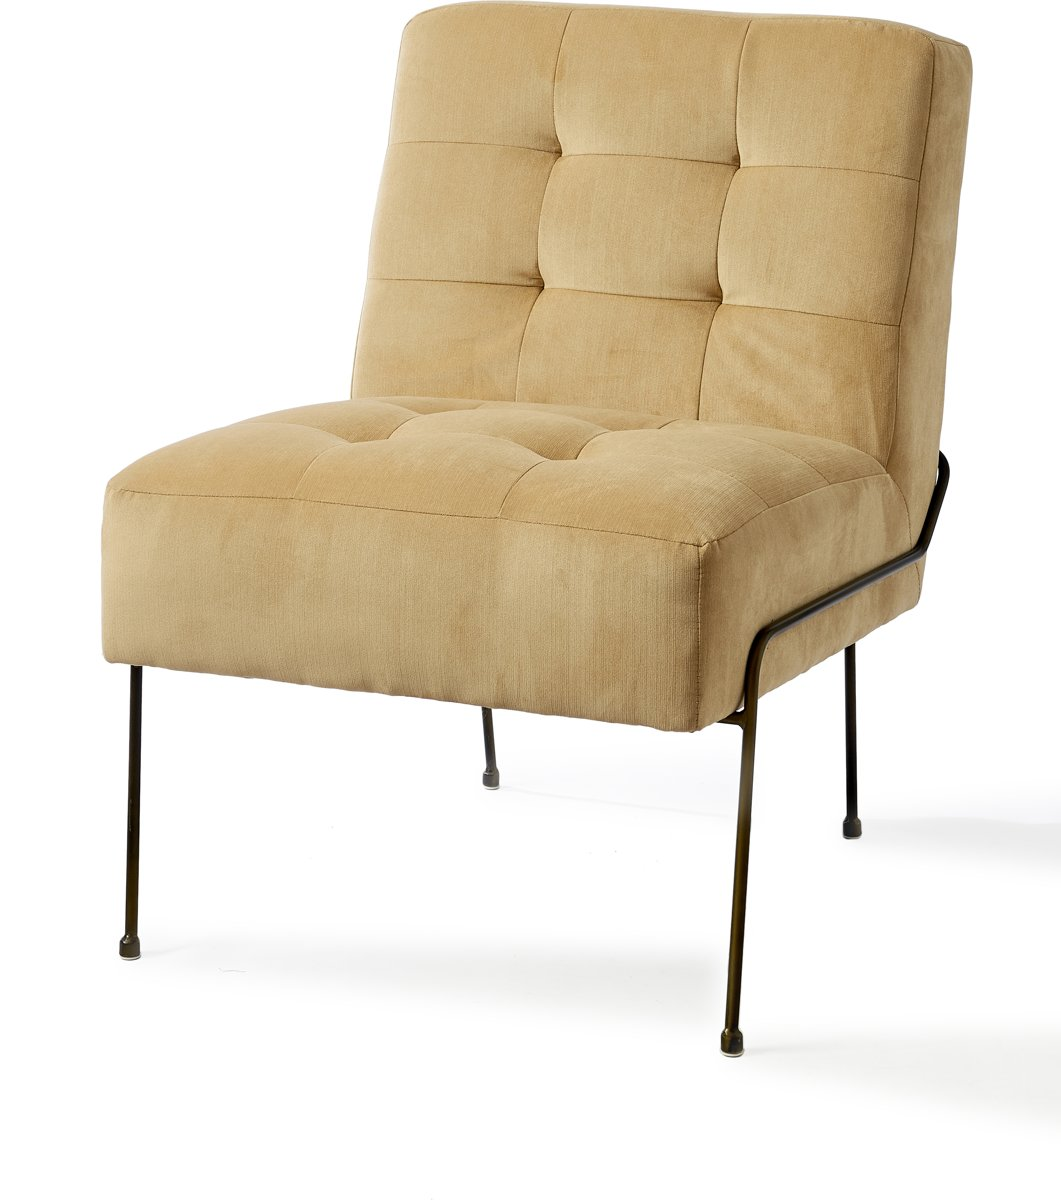 Riviera Maison Soho Lobby Chair – Khaki – Loungechair